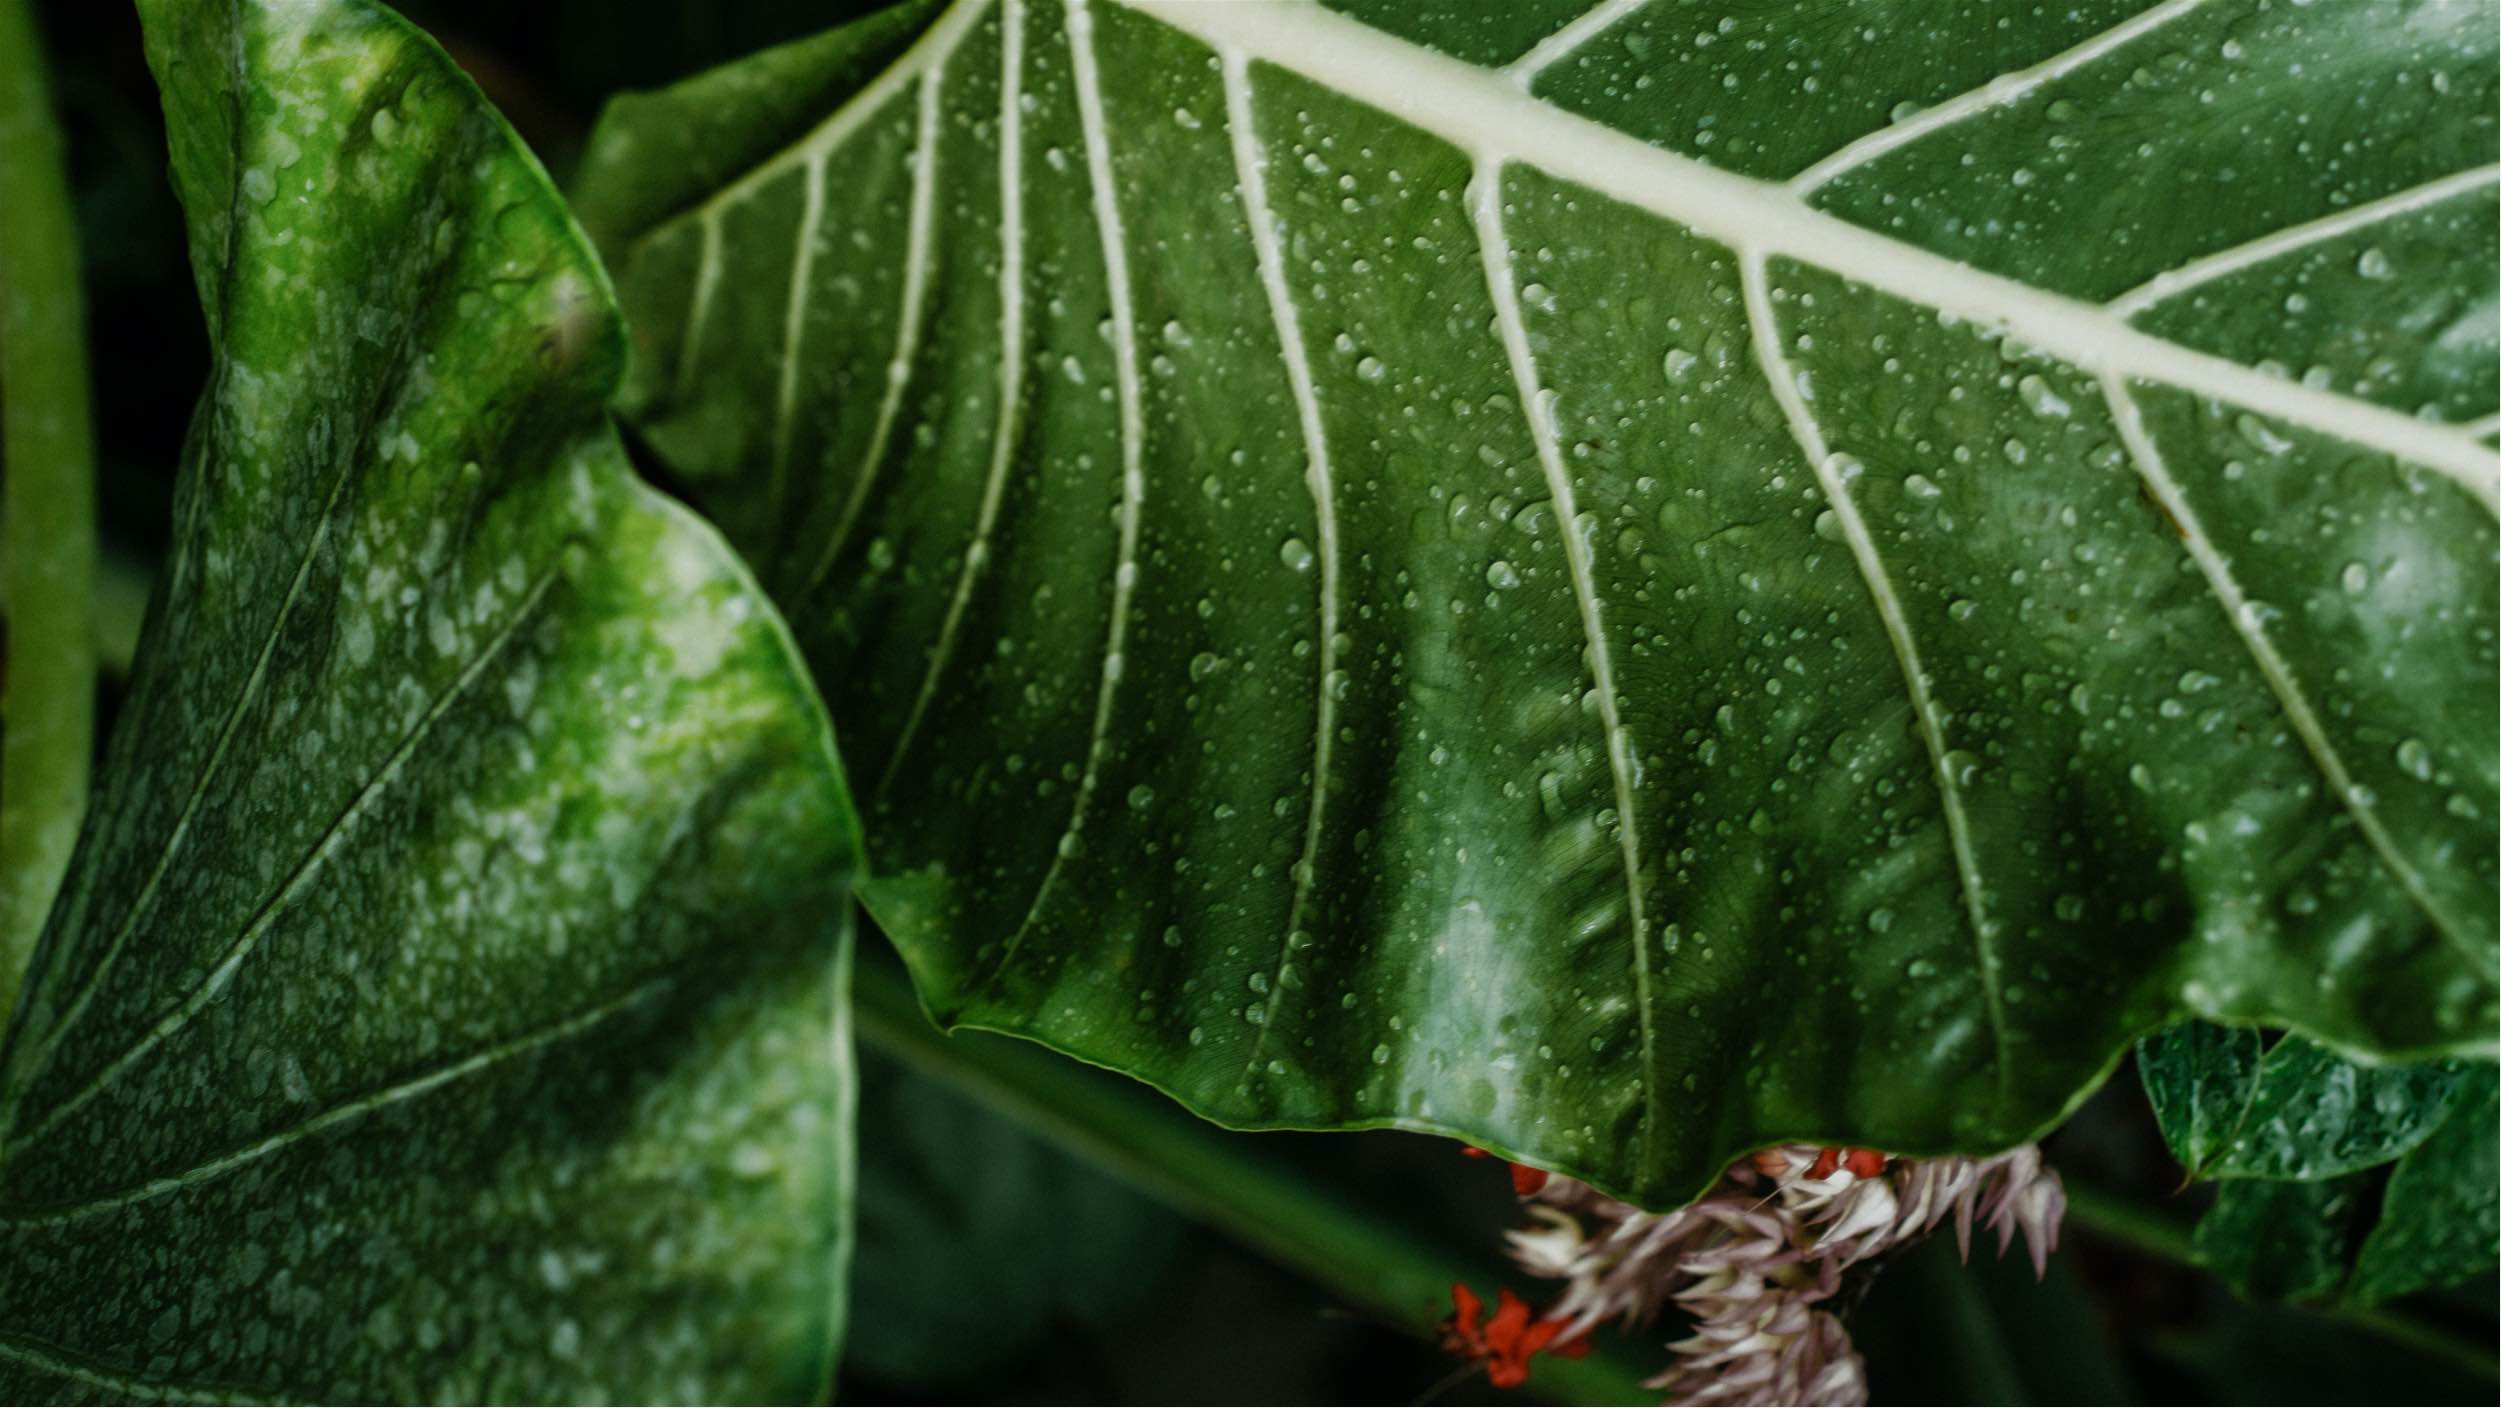 large green leaves with dew